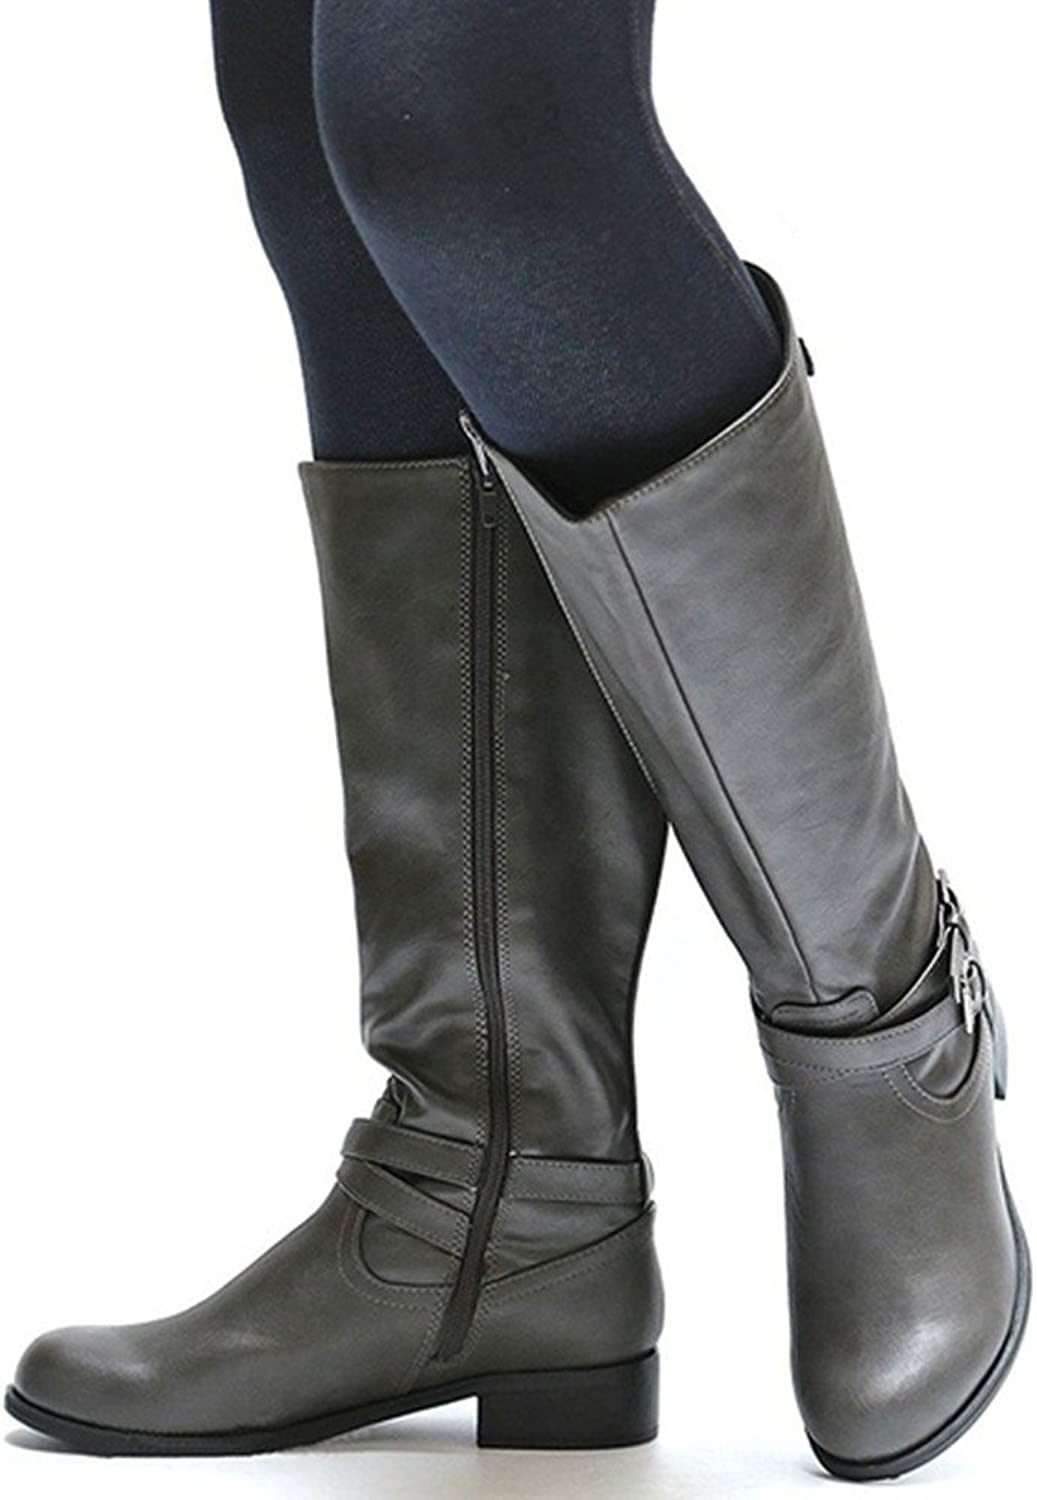 Cicy Bell Womens Winter Knee High Boots Wide Calf Chunky Combat Military Buckle Side Zip Booties